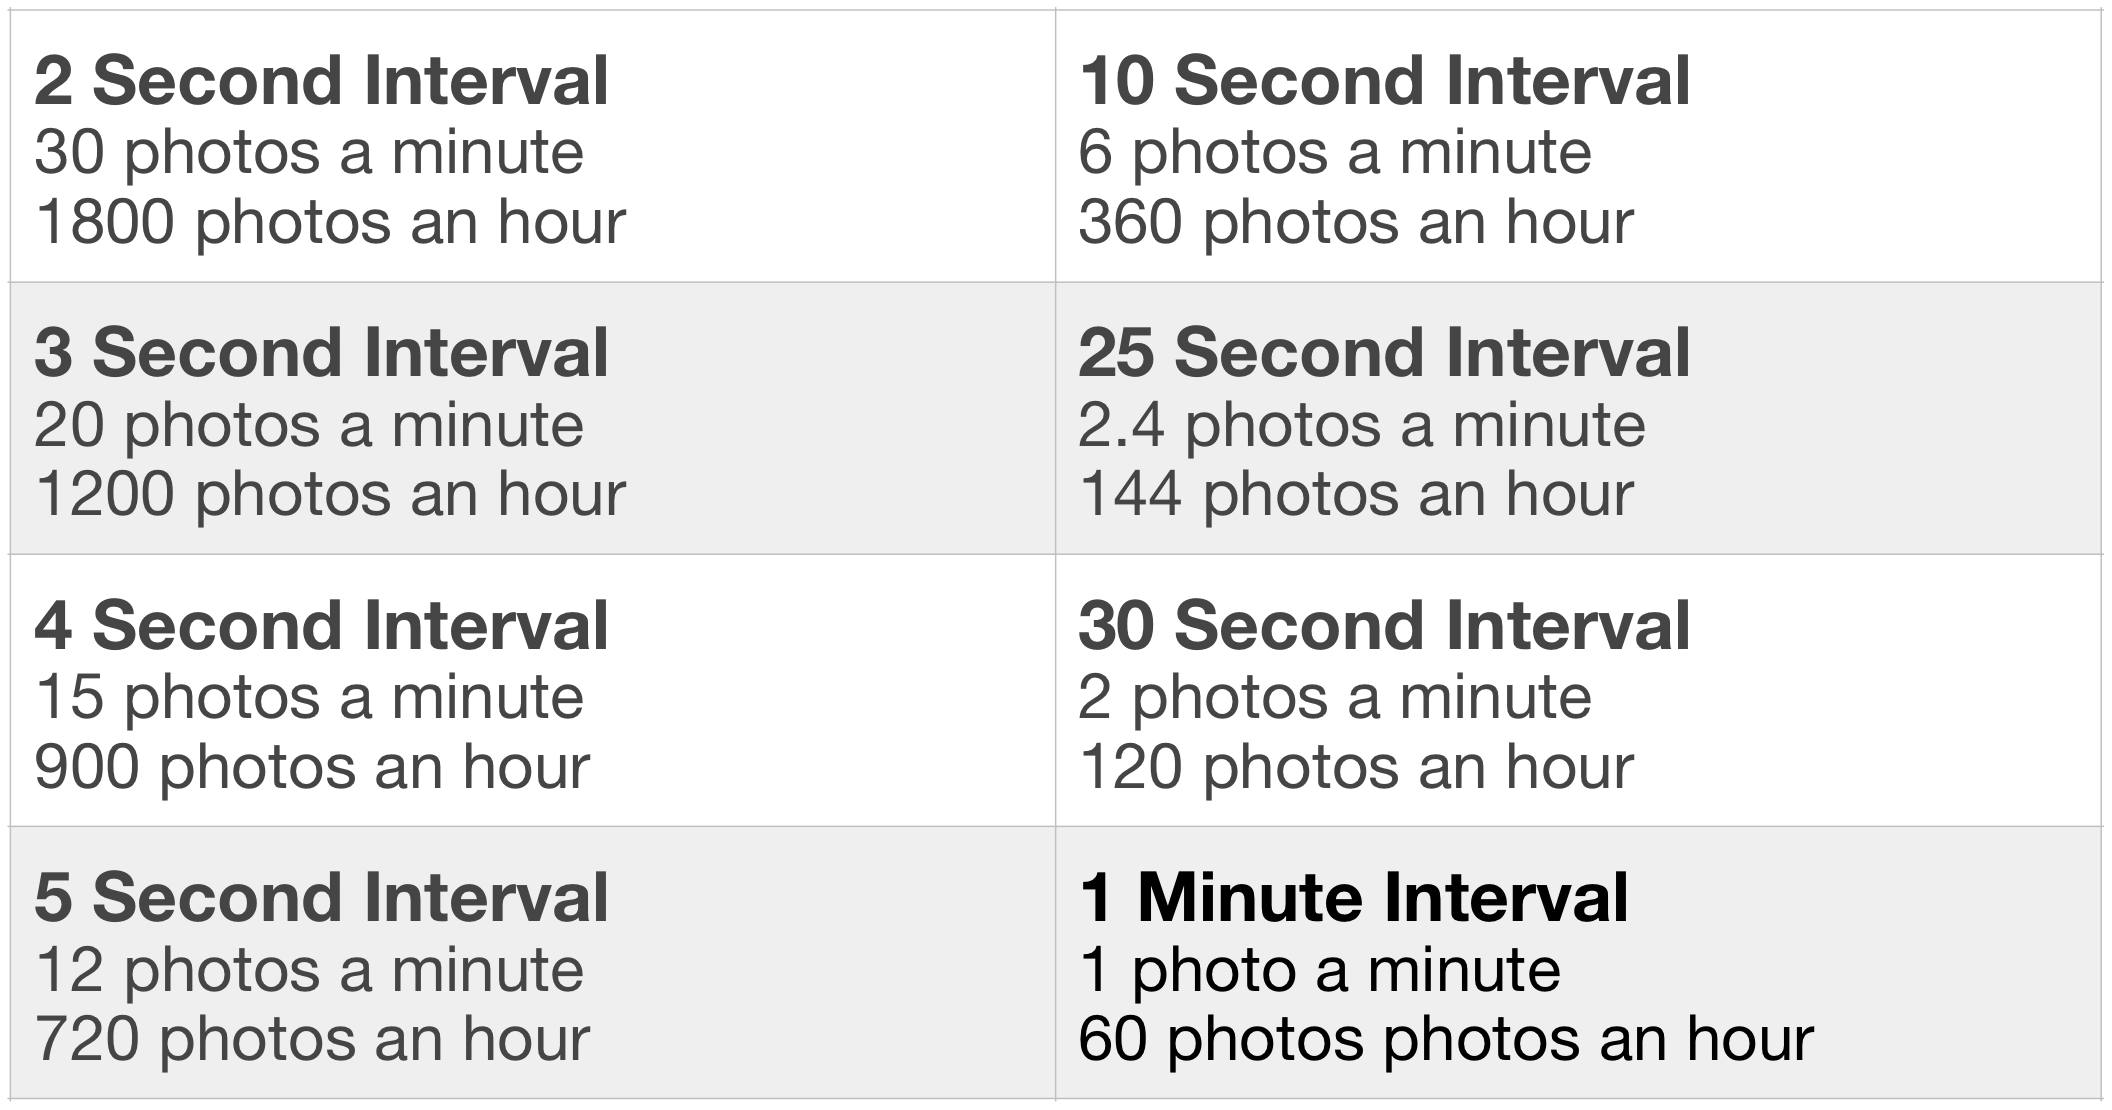 This is a quick 'interval guide' that I use when planning timelapses. It is useful to estimate how many shots I will take in the time I am shooting for, therefore giving an estimate of the media size when finished